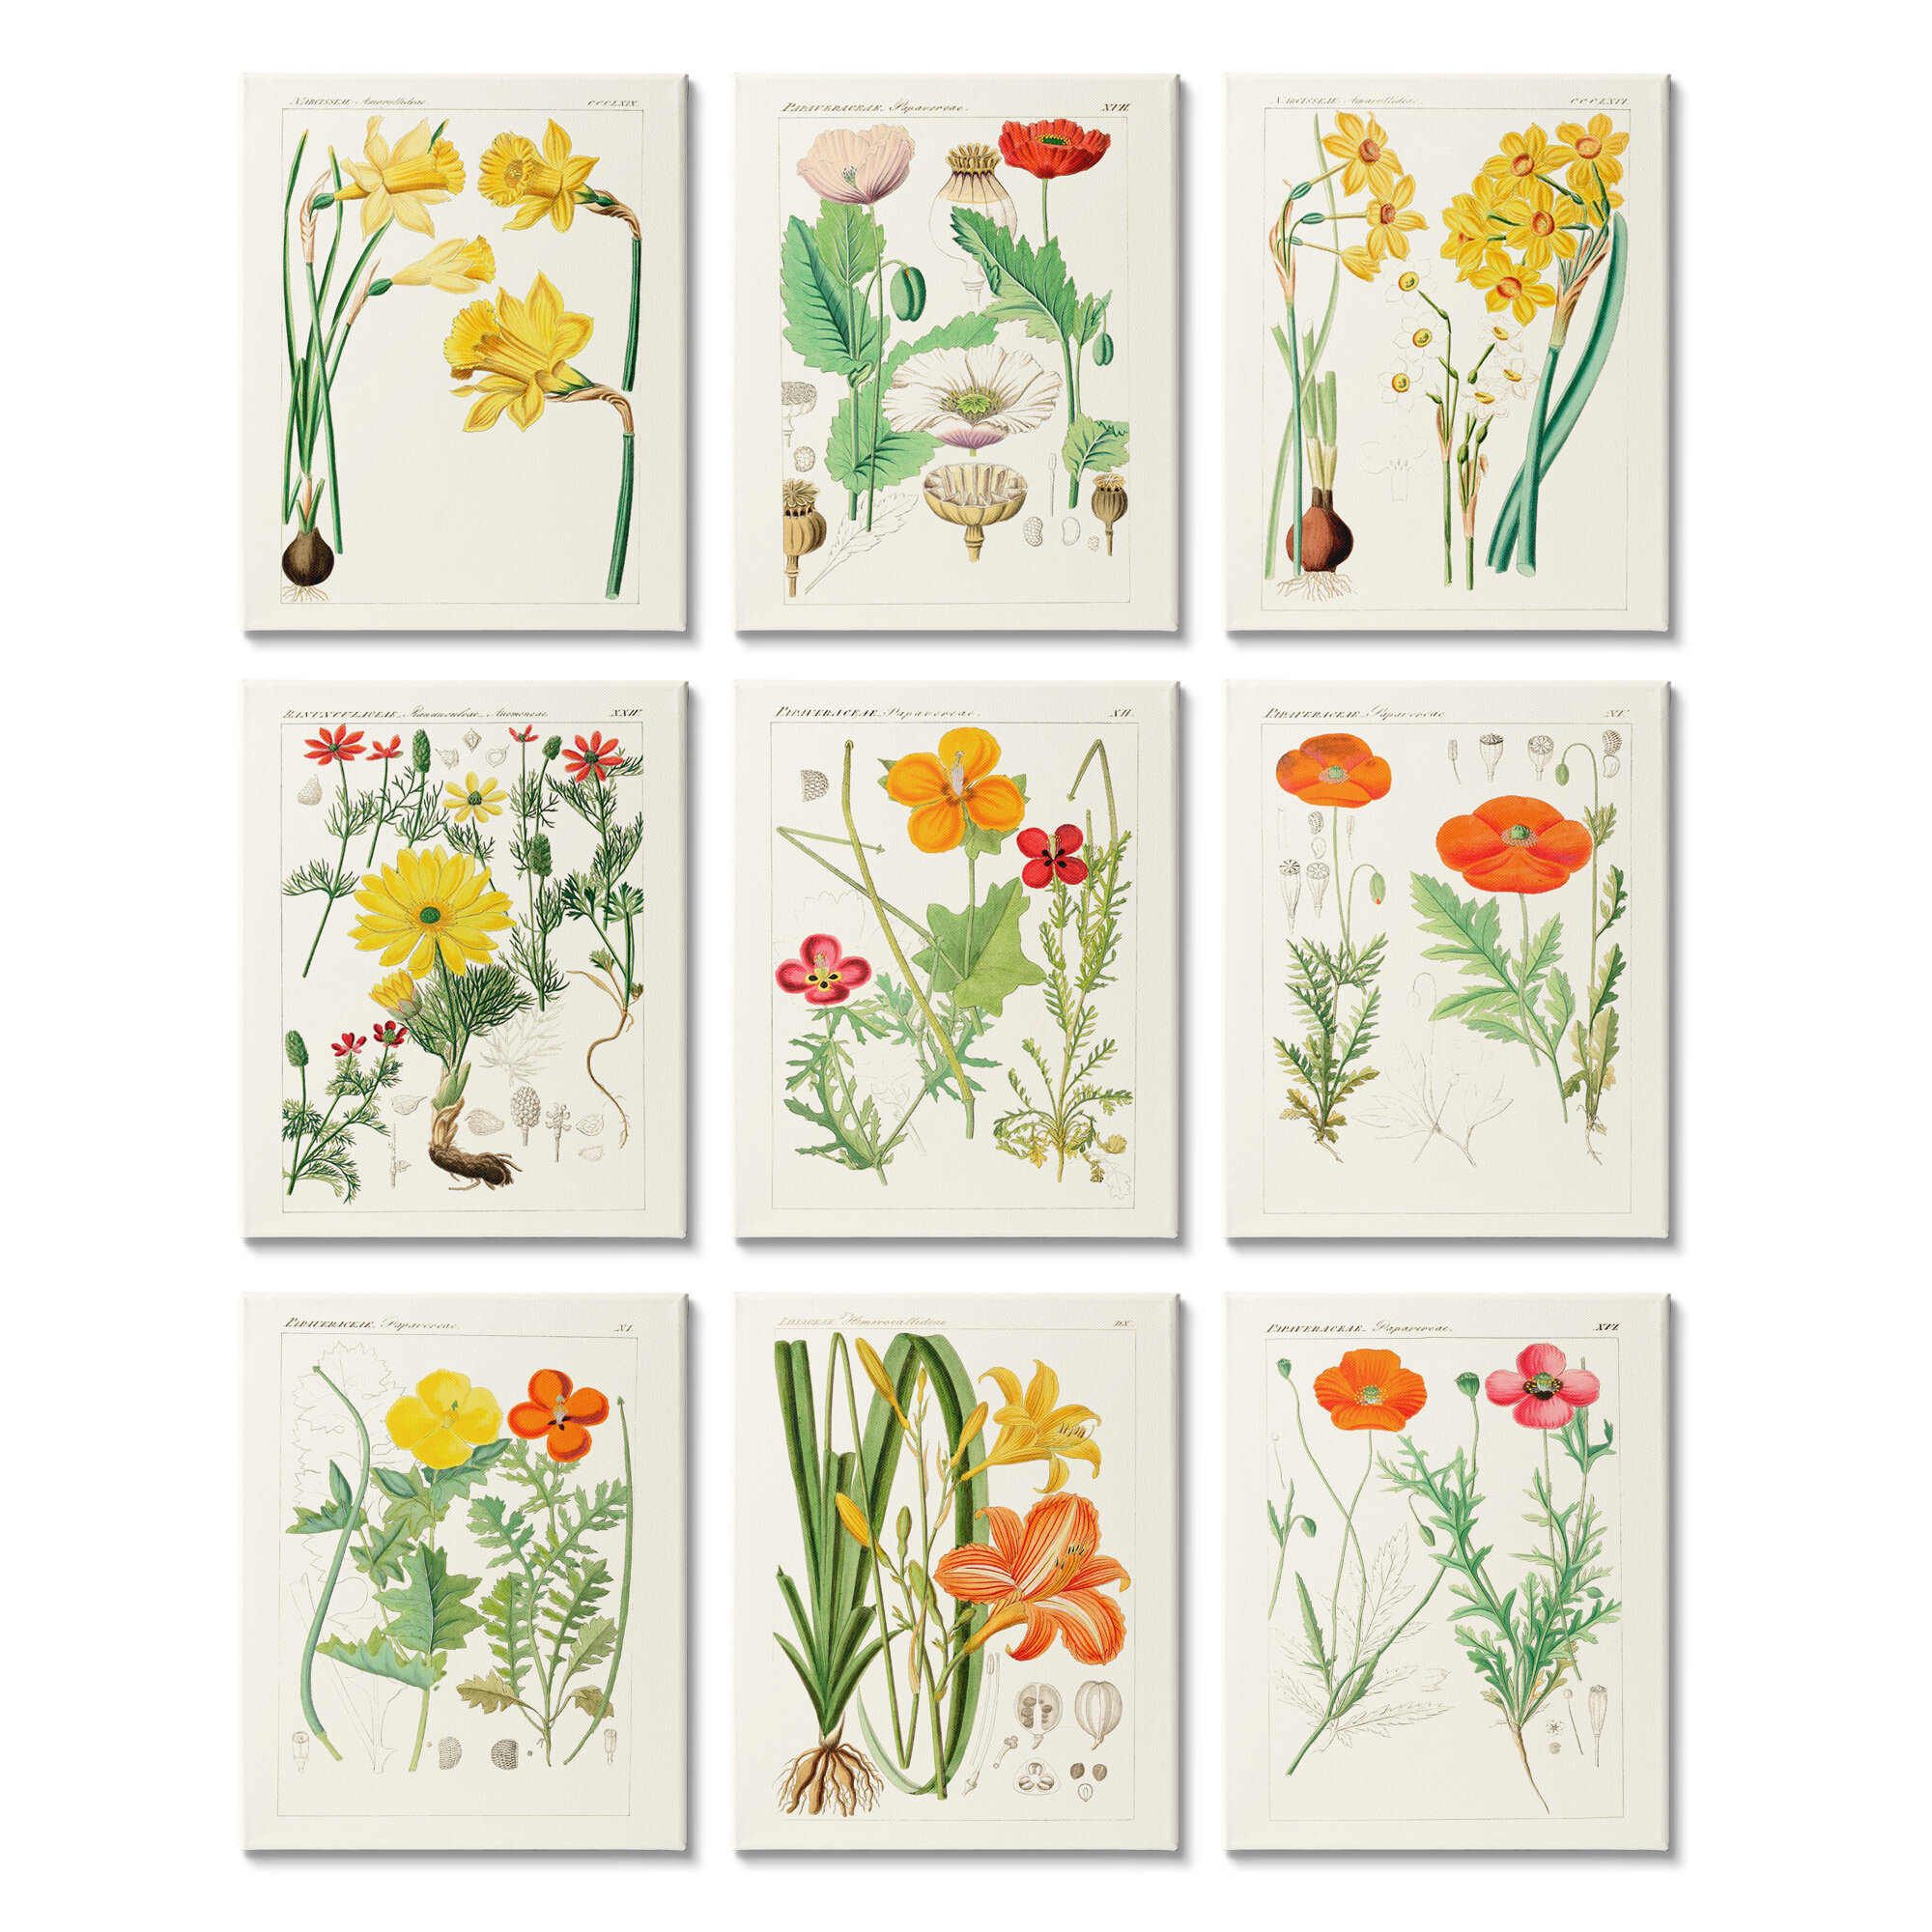 Rosalind Wheeler Vibrant Botanical Scientific Study Vintage Florals 9 Piece Graphic Art Print Set Wayfair